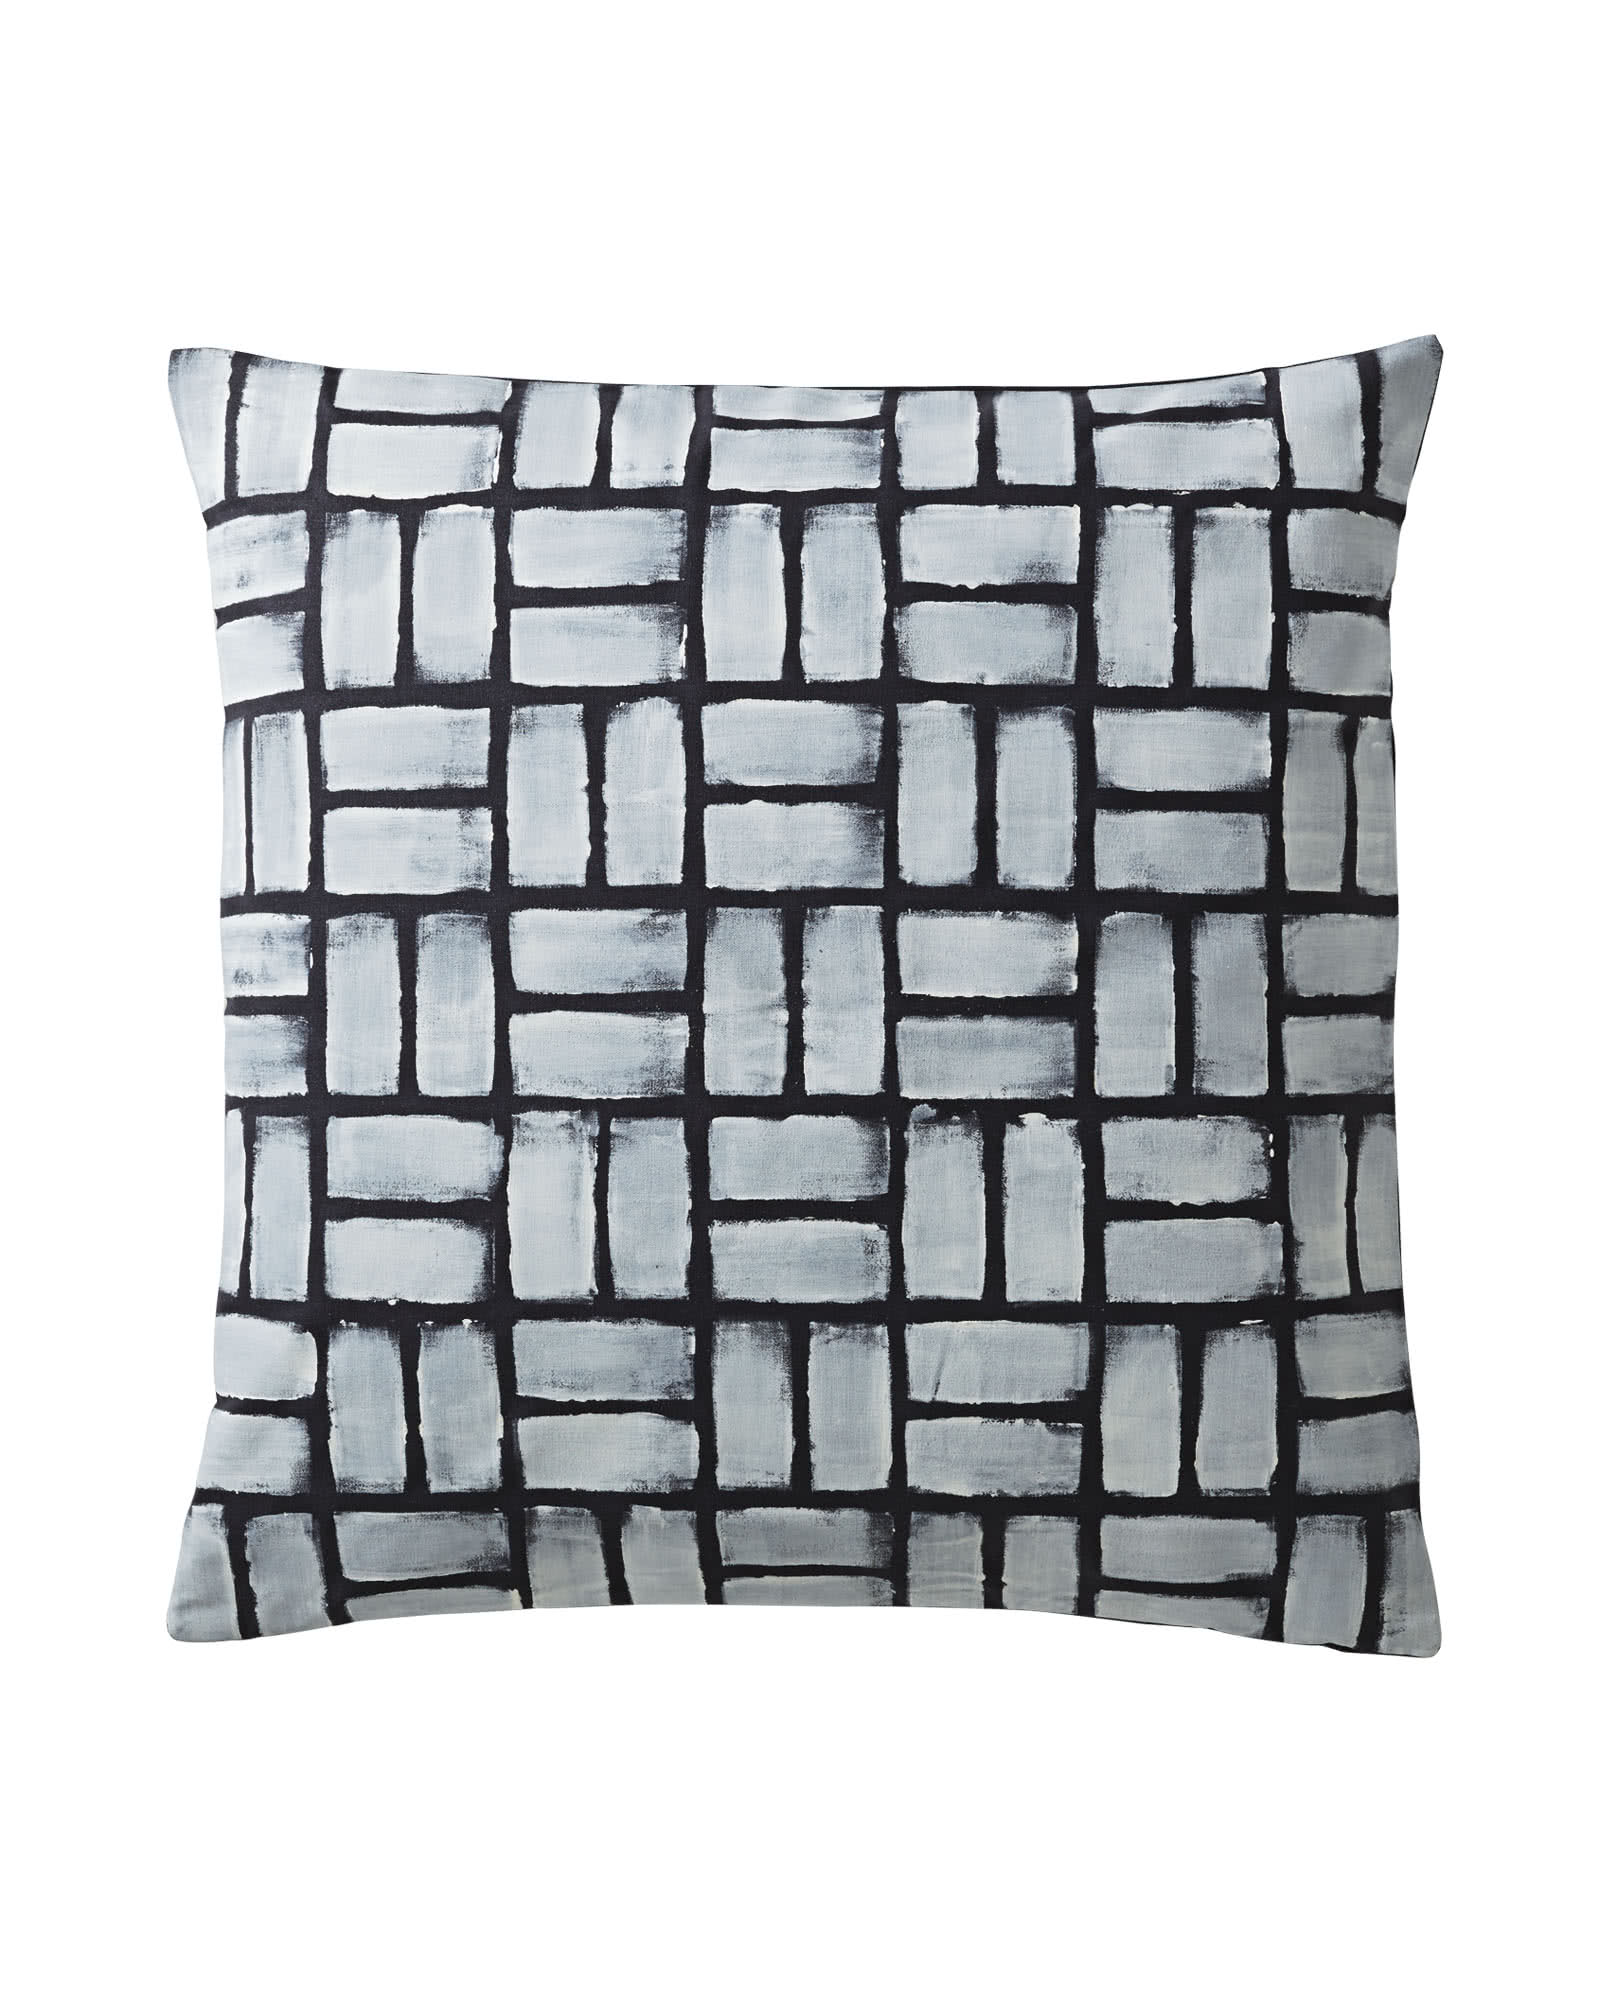 Painted Basketweave Pillow Covers,